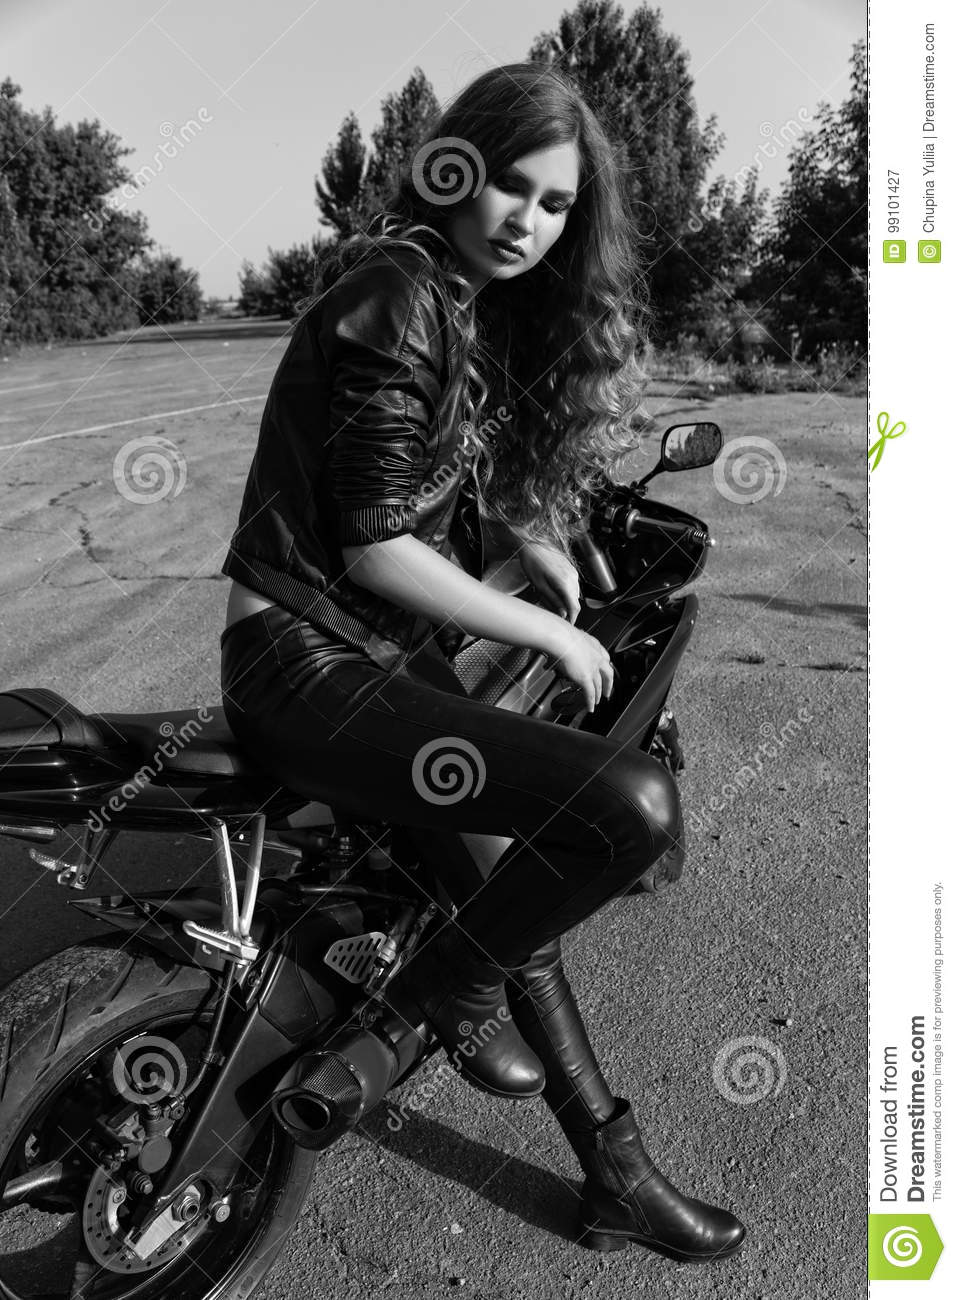 Young woman in leather clothes near a motorcycle black and white photo